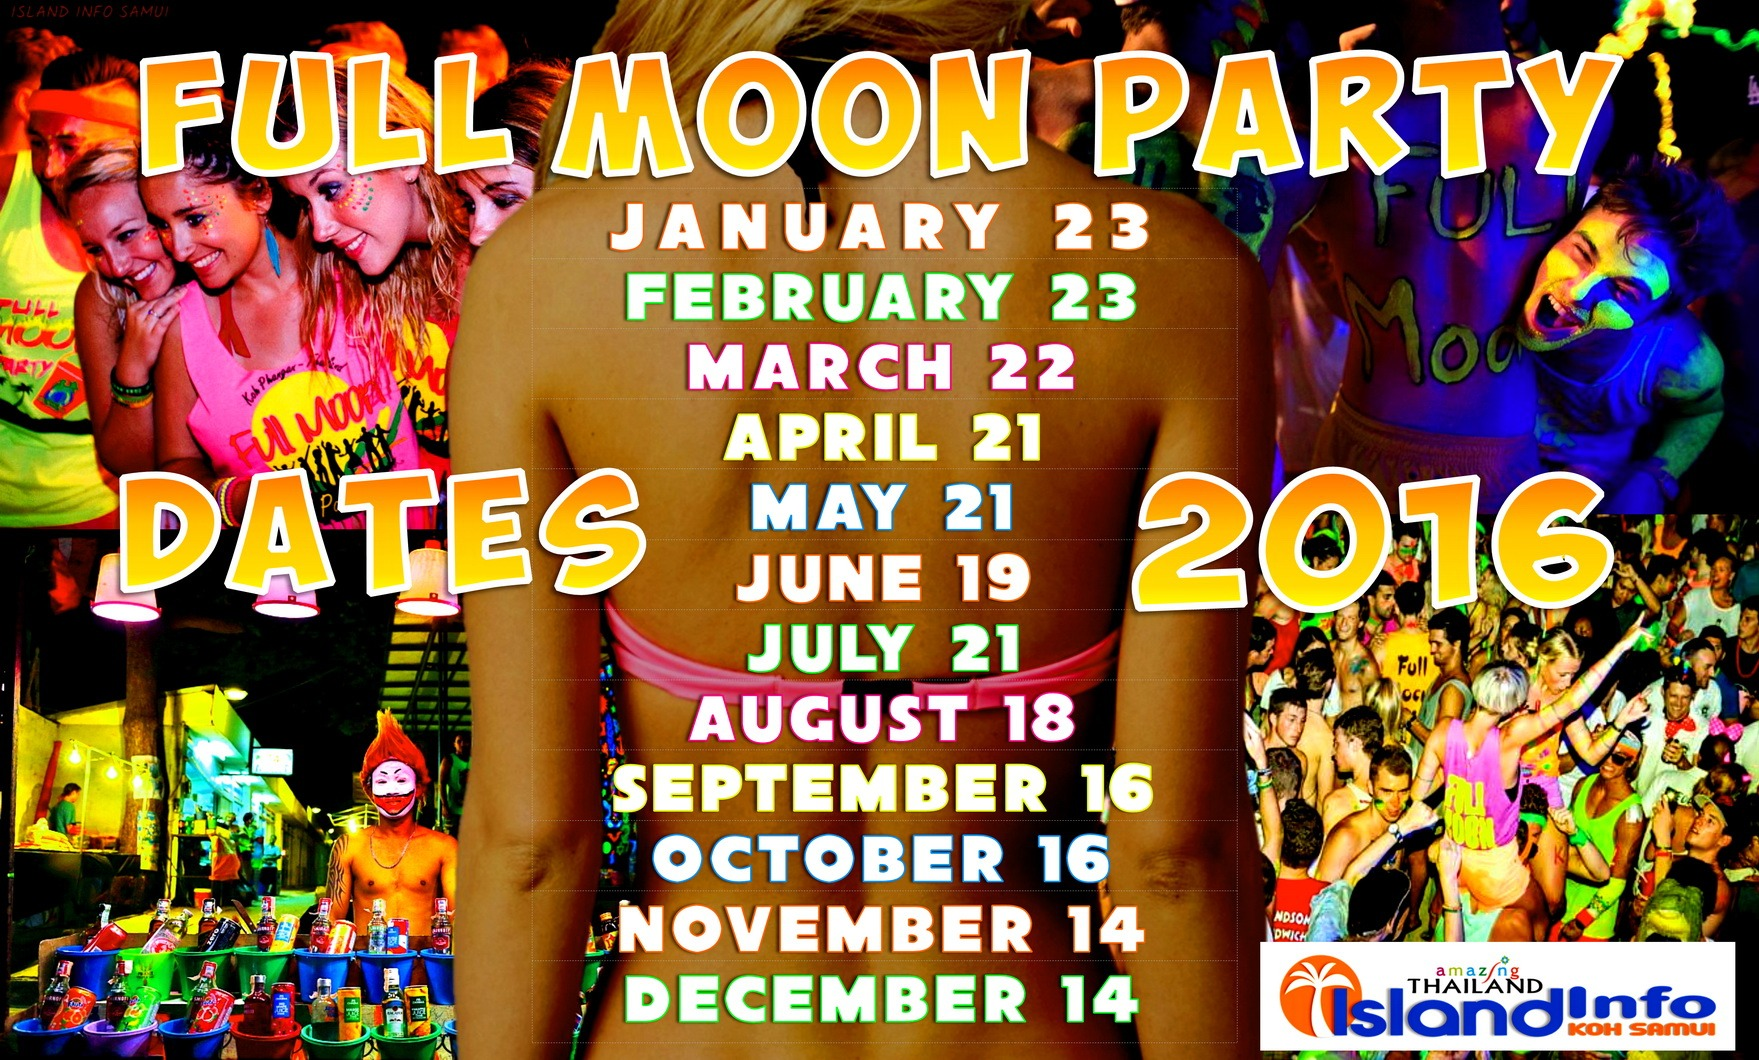 2016 Full Moon Party Schedule